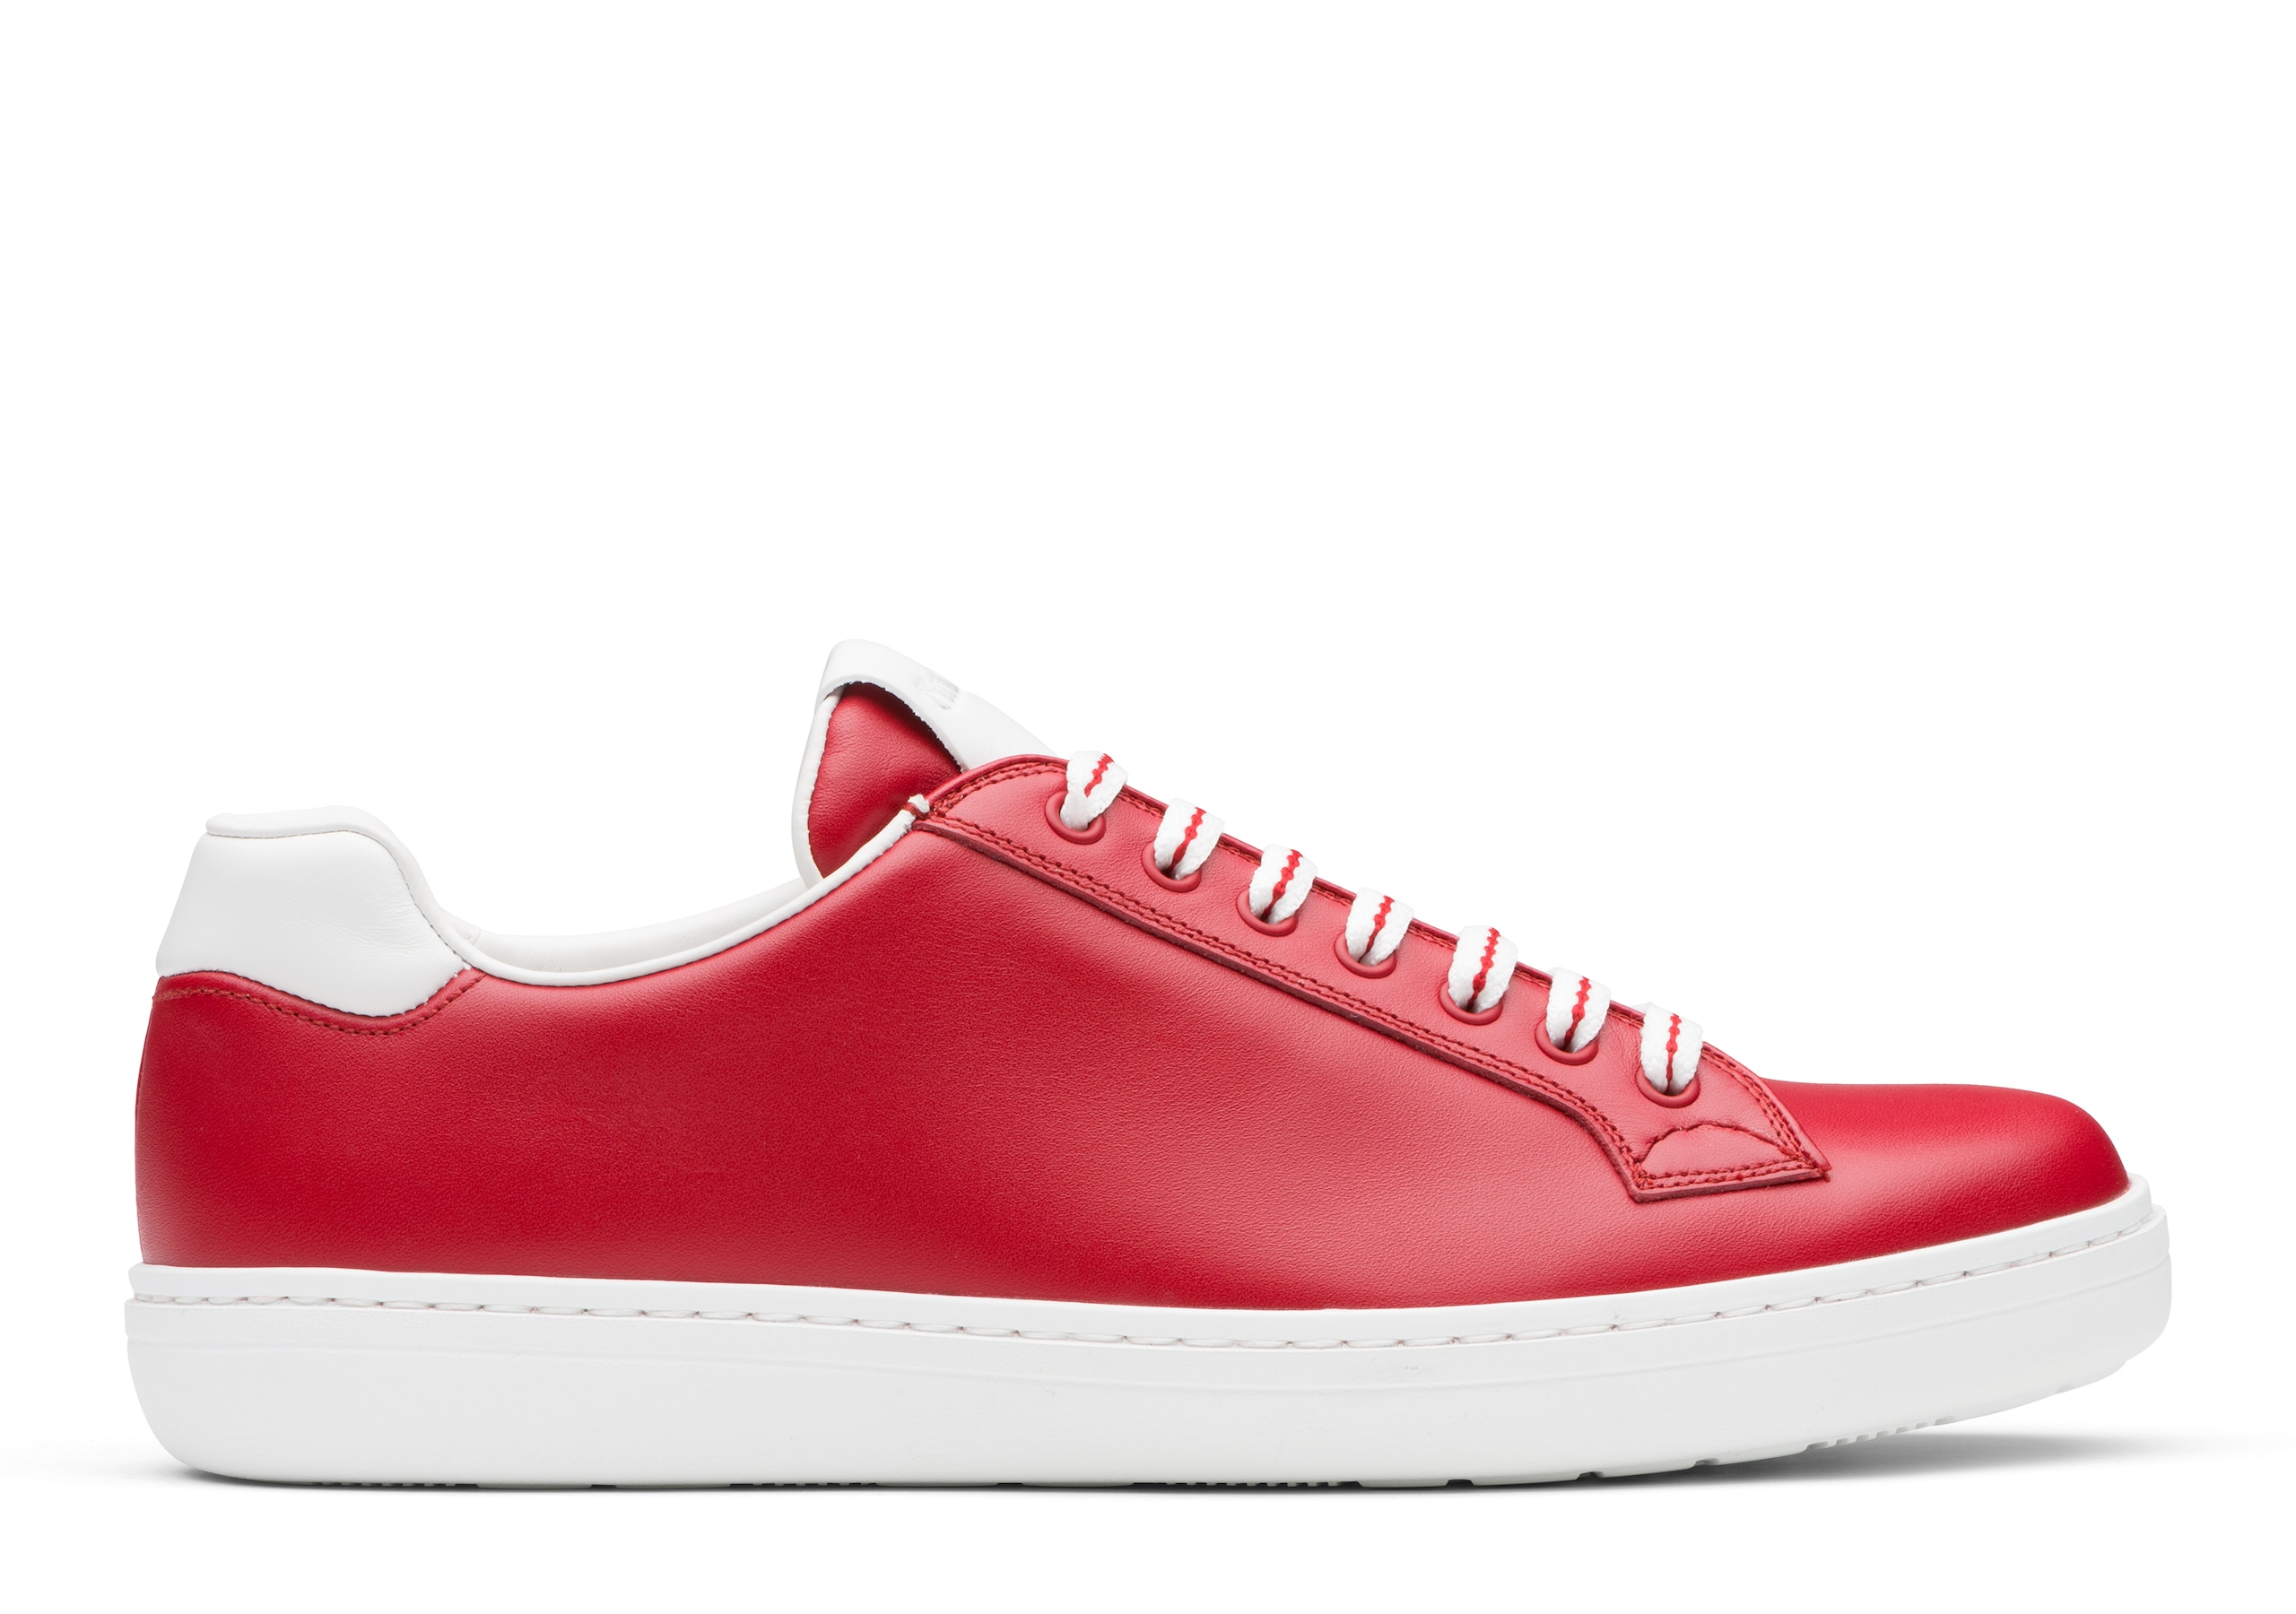 Boland plus Church's Calf Leather Classic Sneaker Red